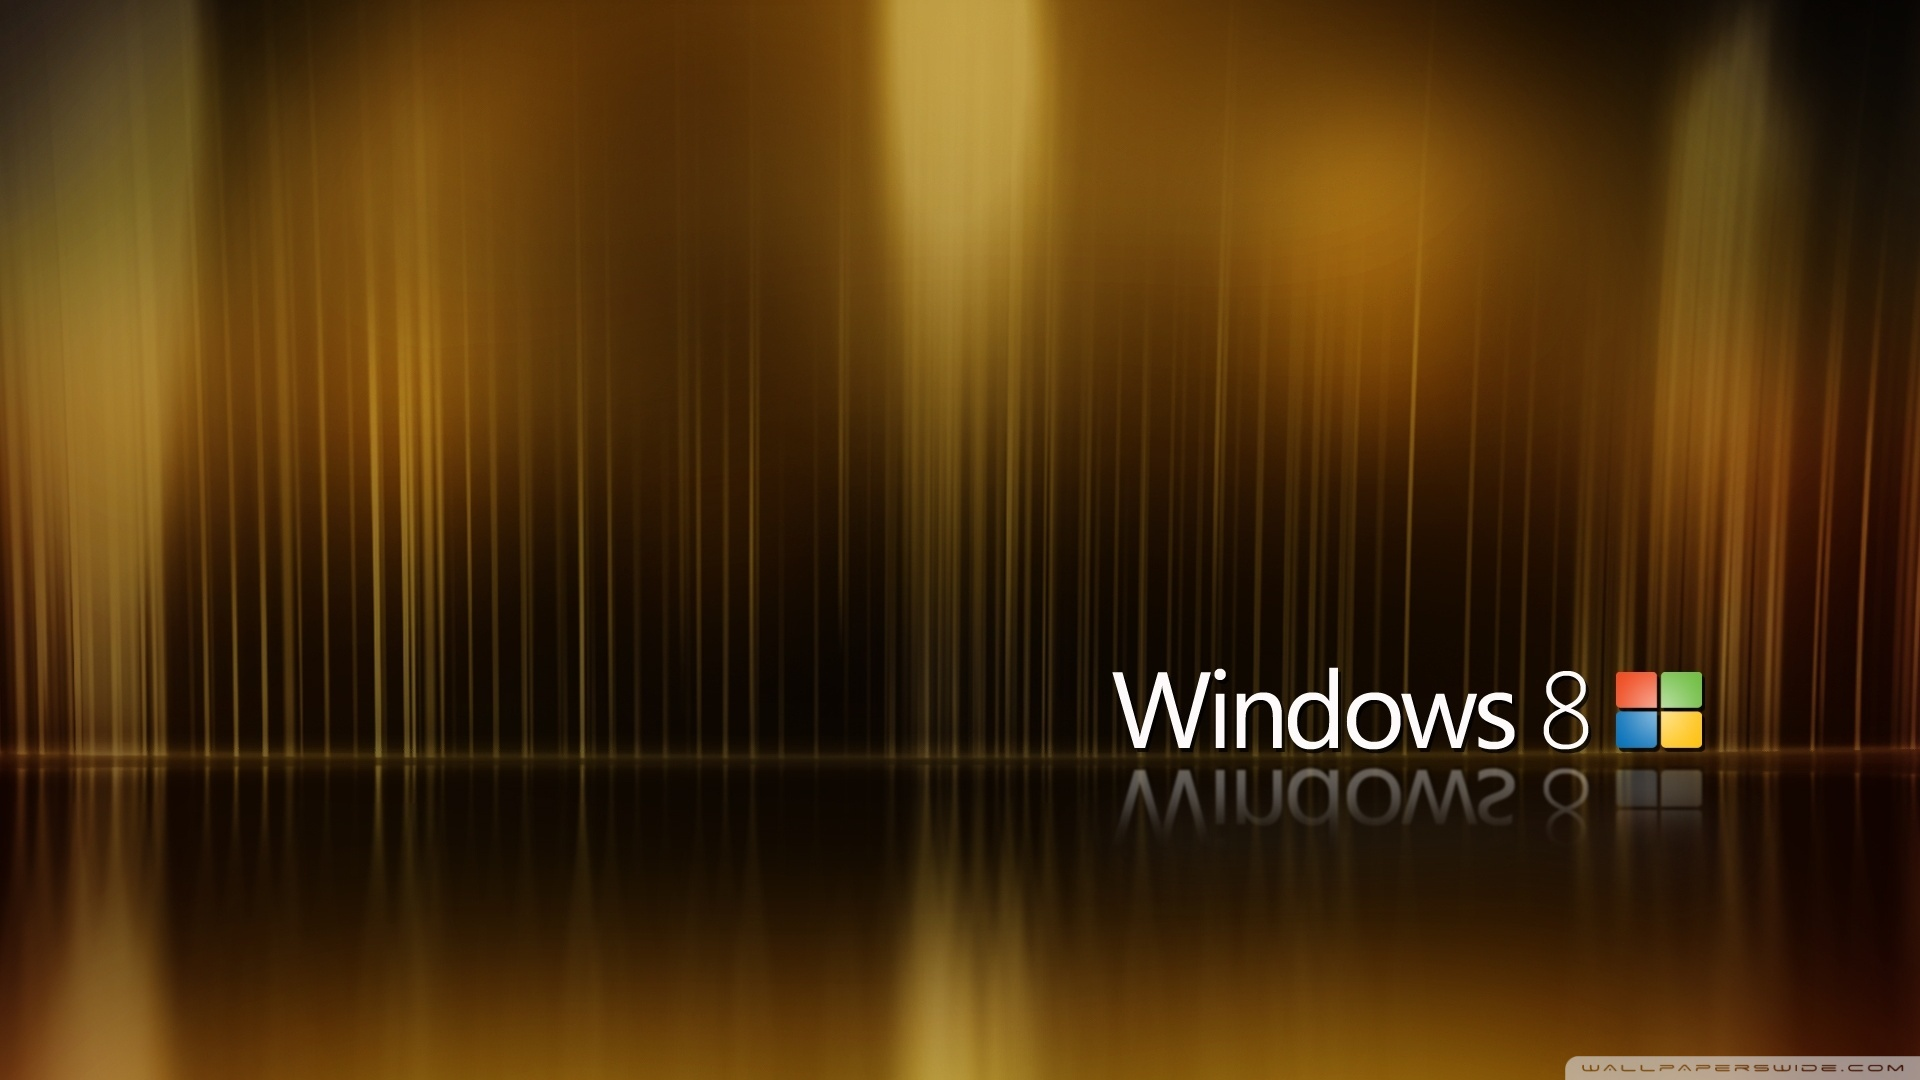 Window 8 Wallpaper